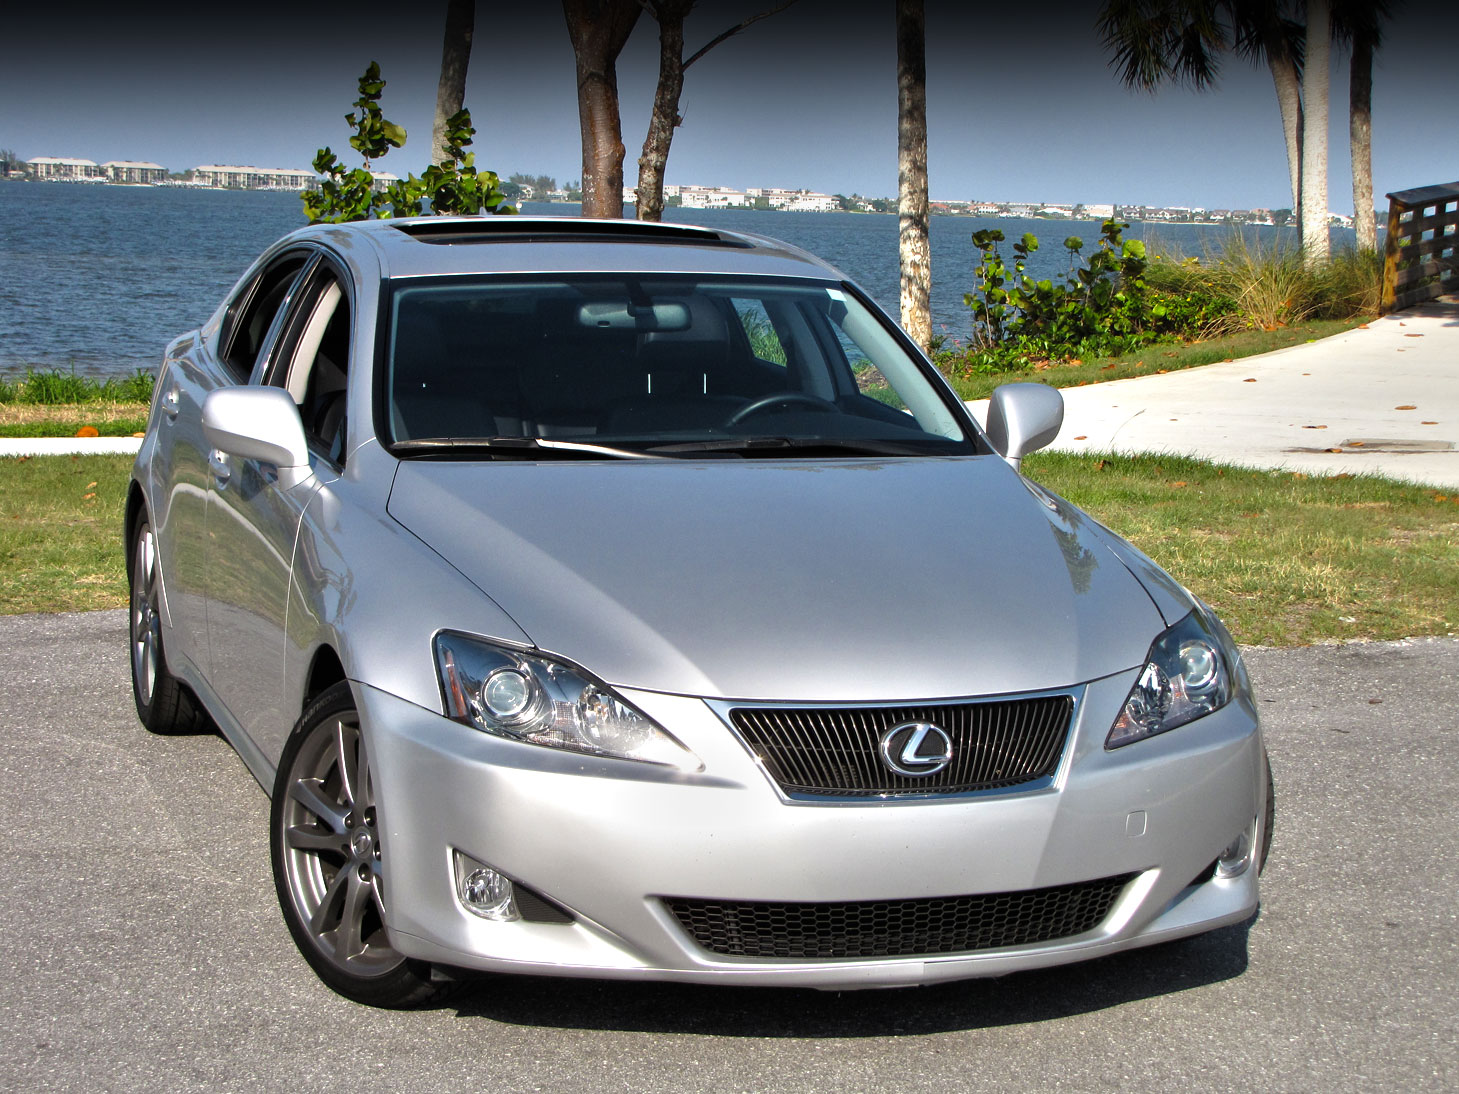 Marvelous 2008 Lexus IS250